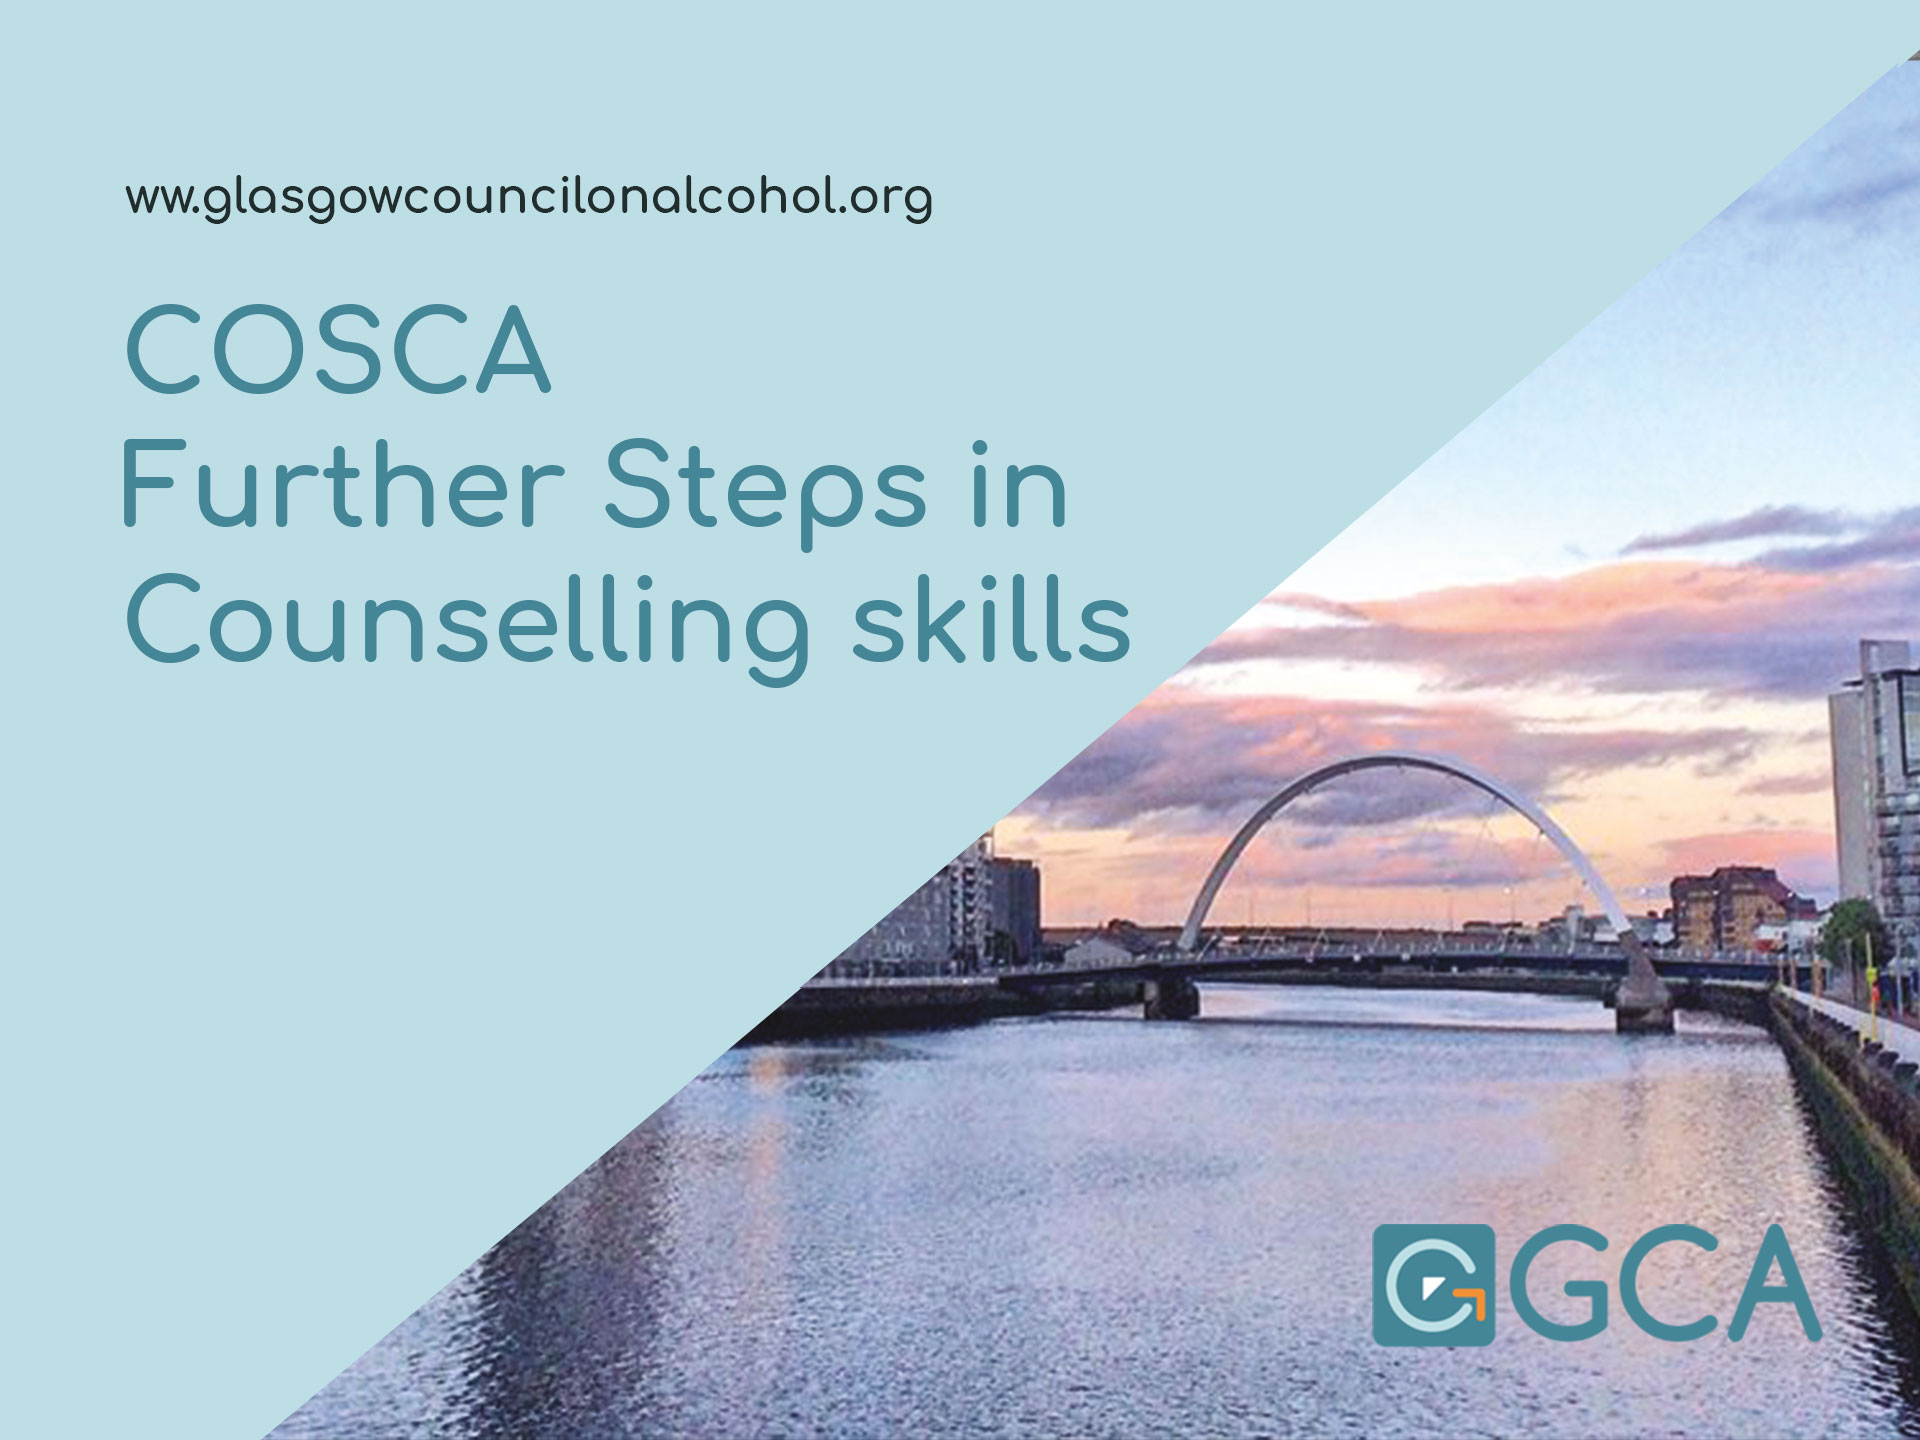 cosca-further-steps